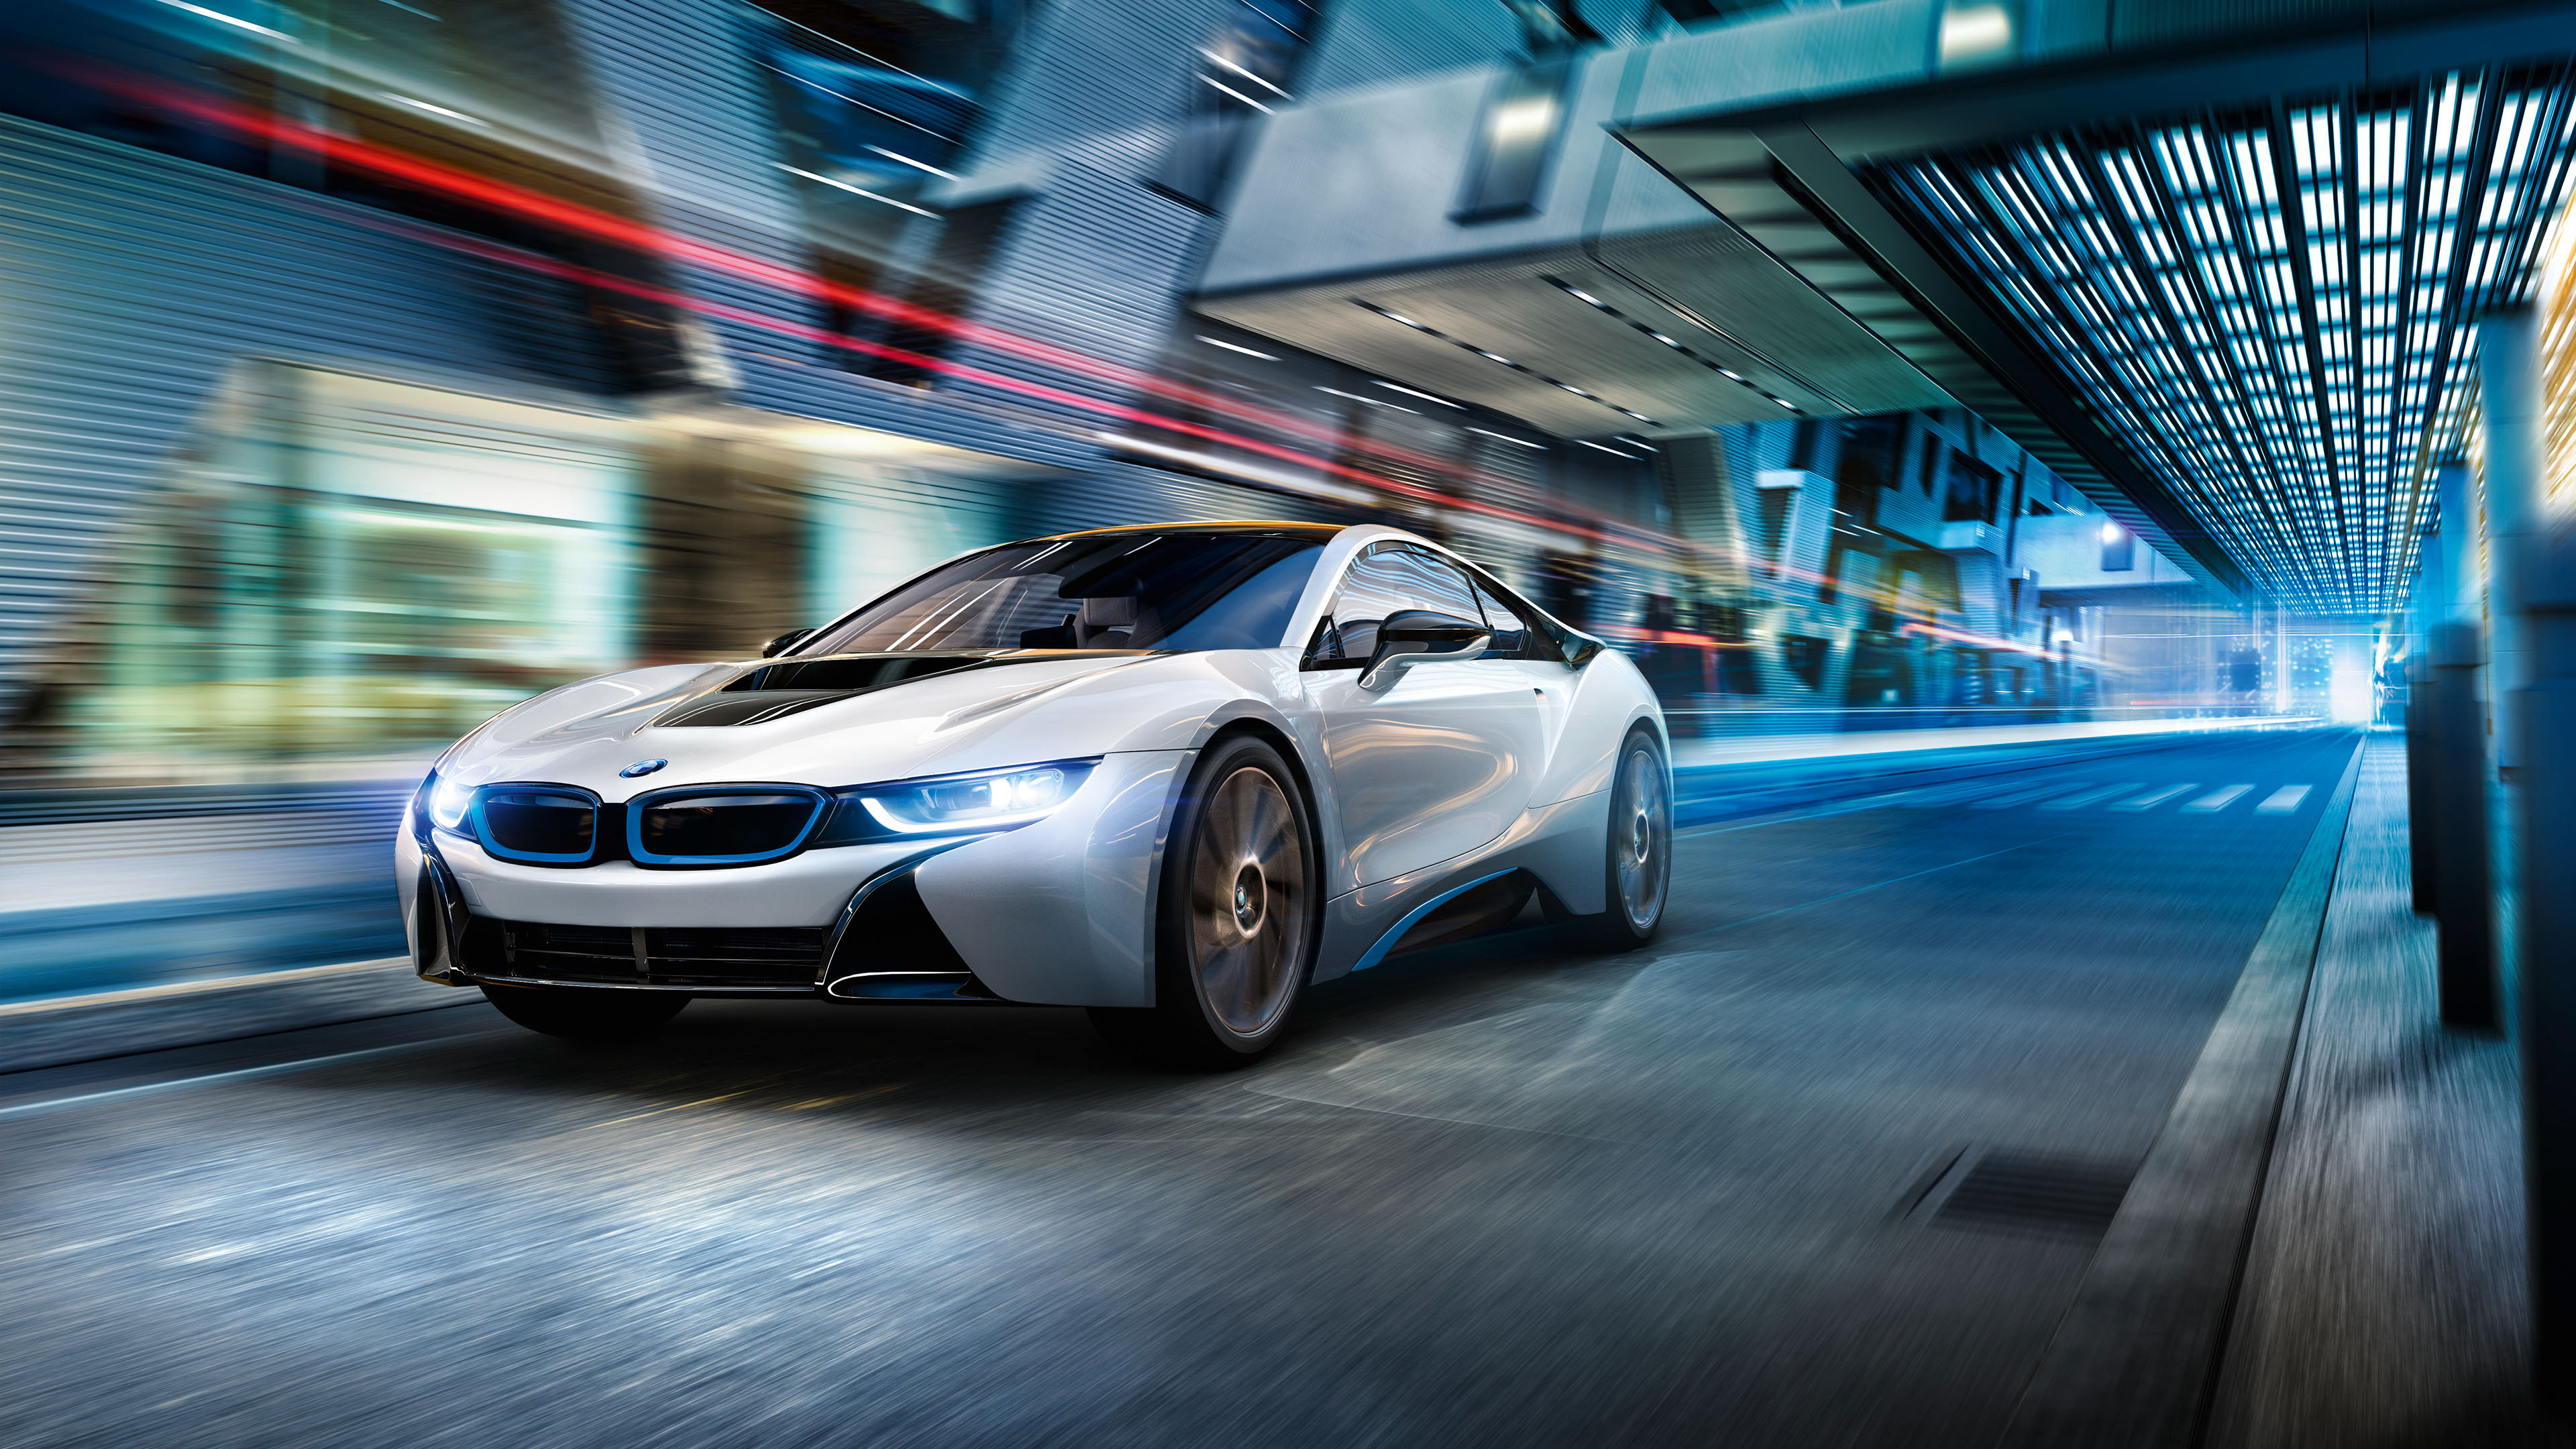 BMW I8 Day White 4K